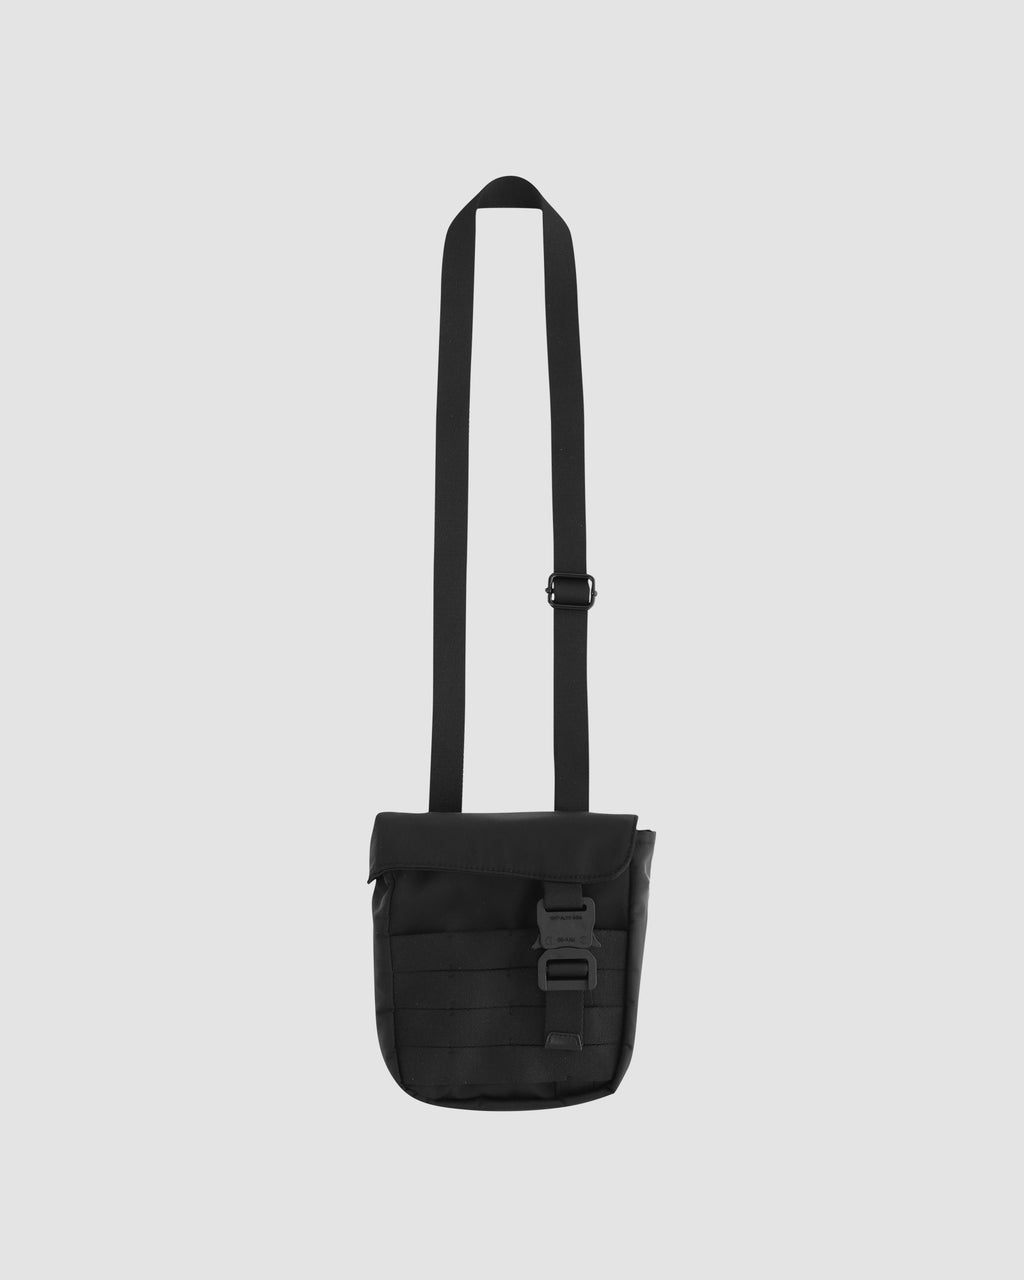 1017 ALYX 9SM | MILITARY SHOULDERBAG | Bag | Accessories, bag, Bag Online, Bags, BLACK, Google Shopping, Man, S20, S20 Drop II, SHOULDER BAGS, UNISEX, Woman